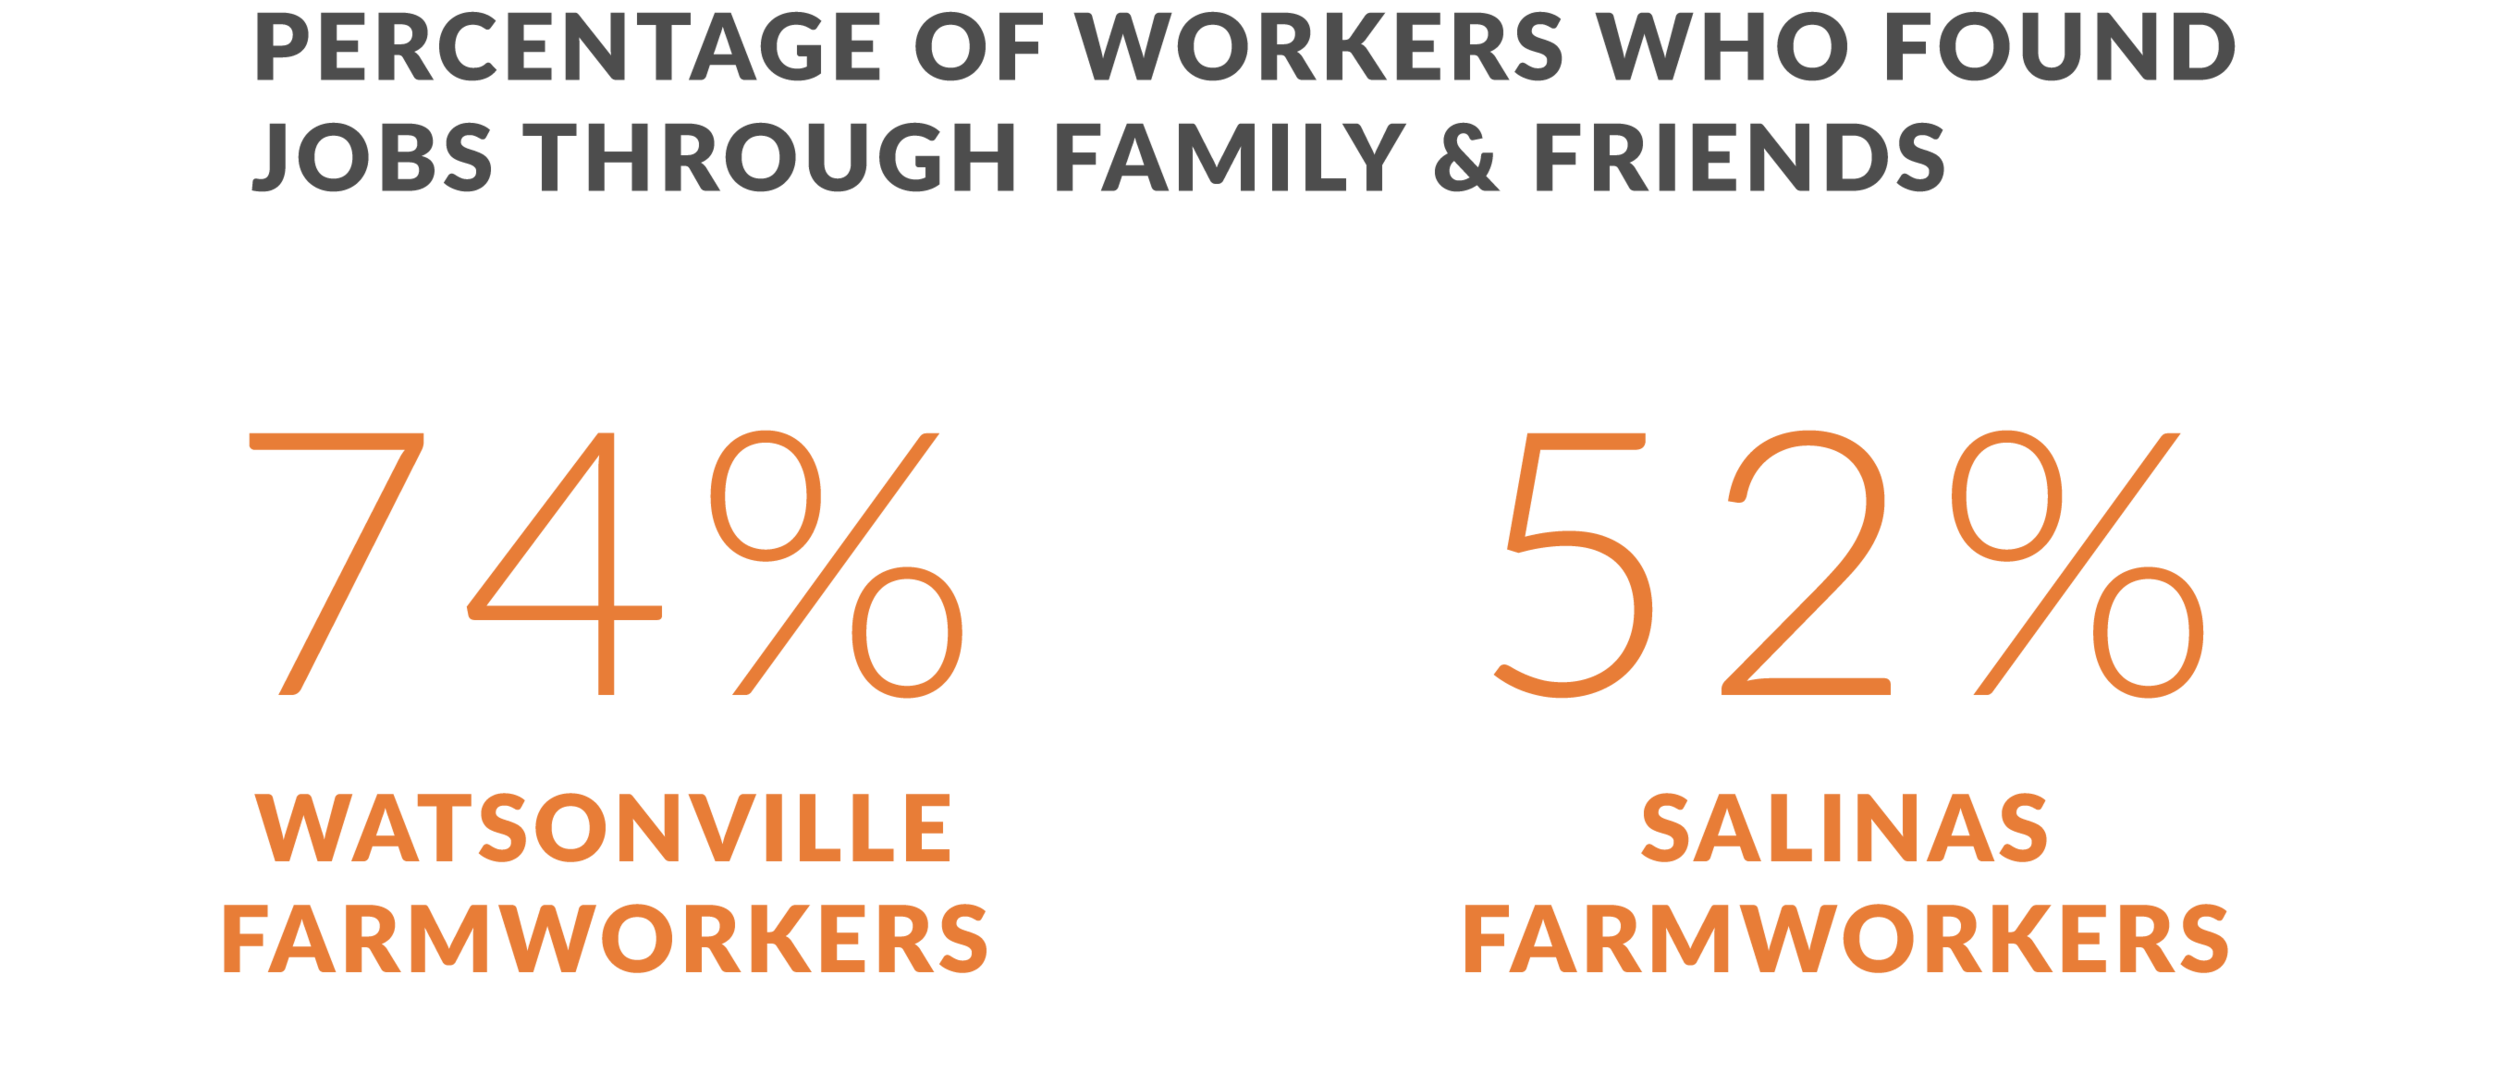 Source:   The Farmworkers' Journey